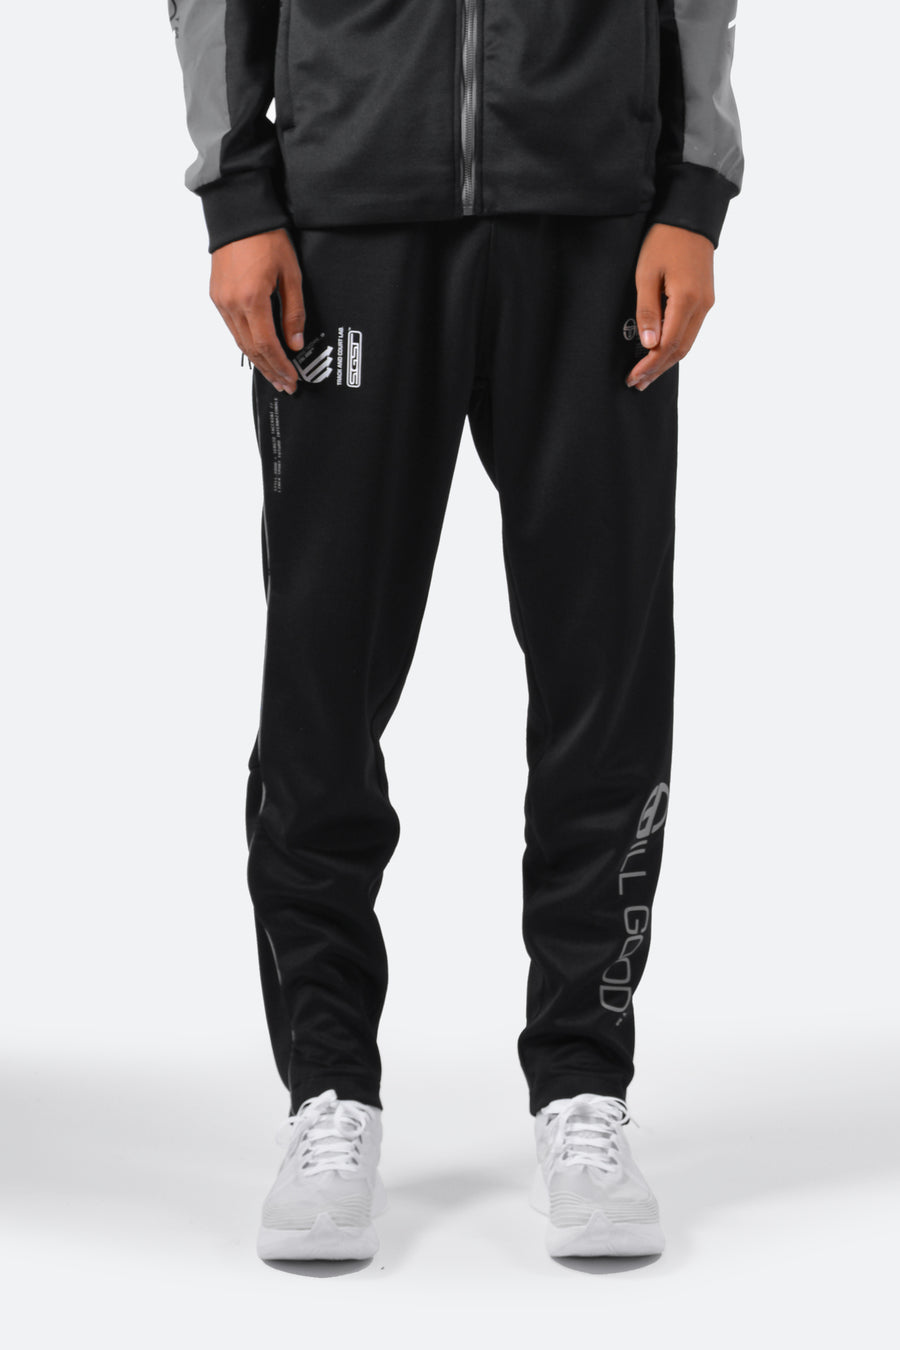 Sergio Tacchini F1 Lab Reflective Track Pants Black/Reflective Grey / XS | Still Good